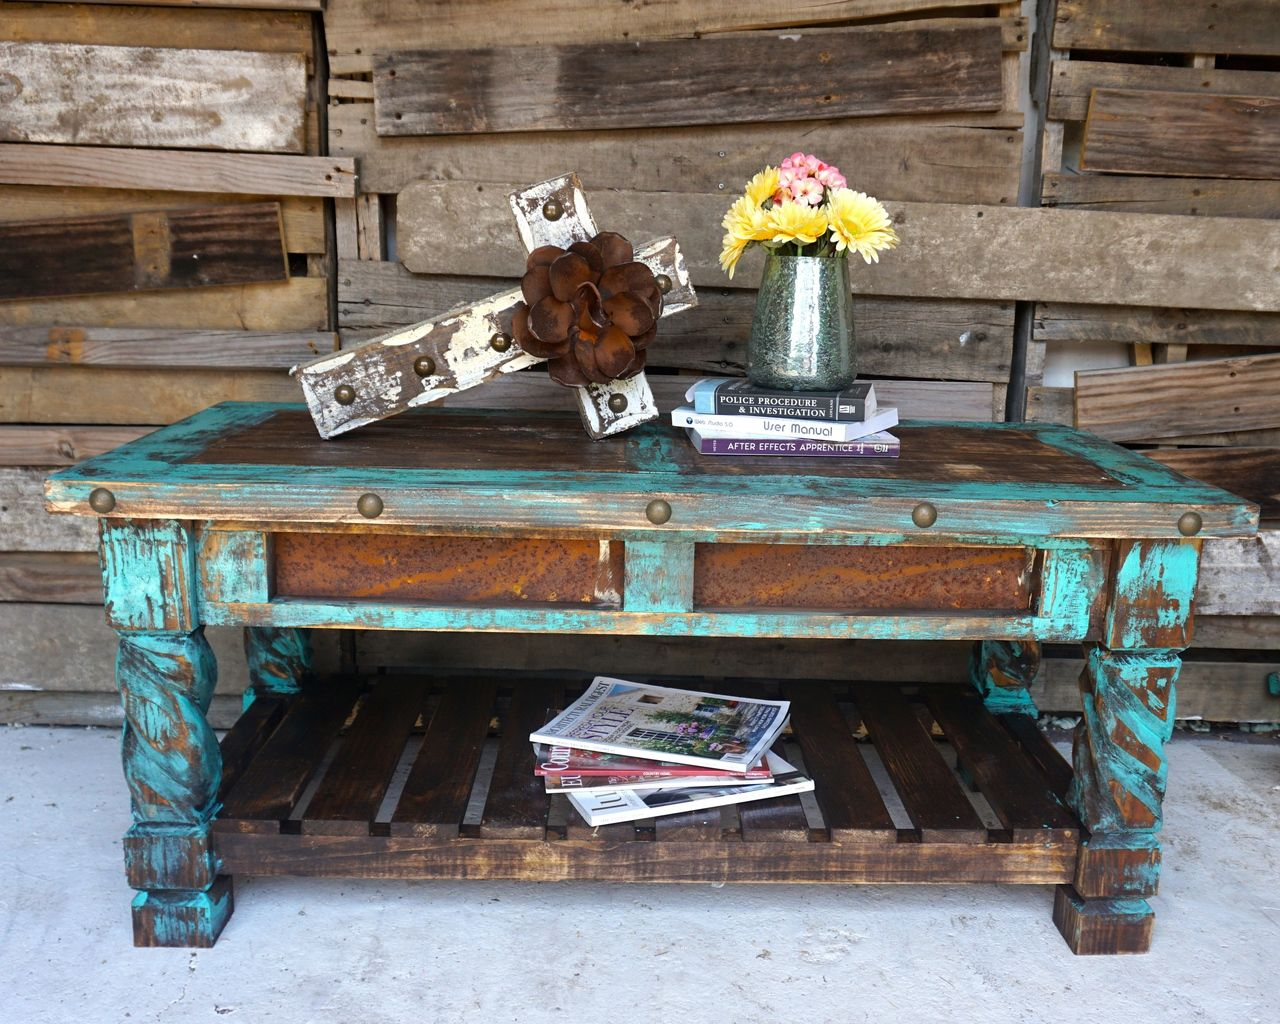 Go green with our new reclaimed teak western decor furniture available - 377 Best Diy Western Decor Images On Pinterest Bull Skulls Animal Skulls And Cow Skull Decor